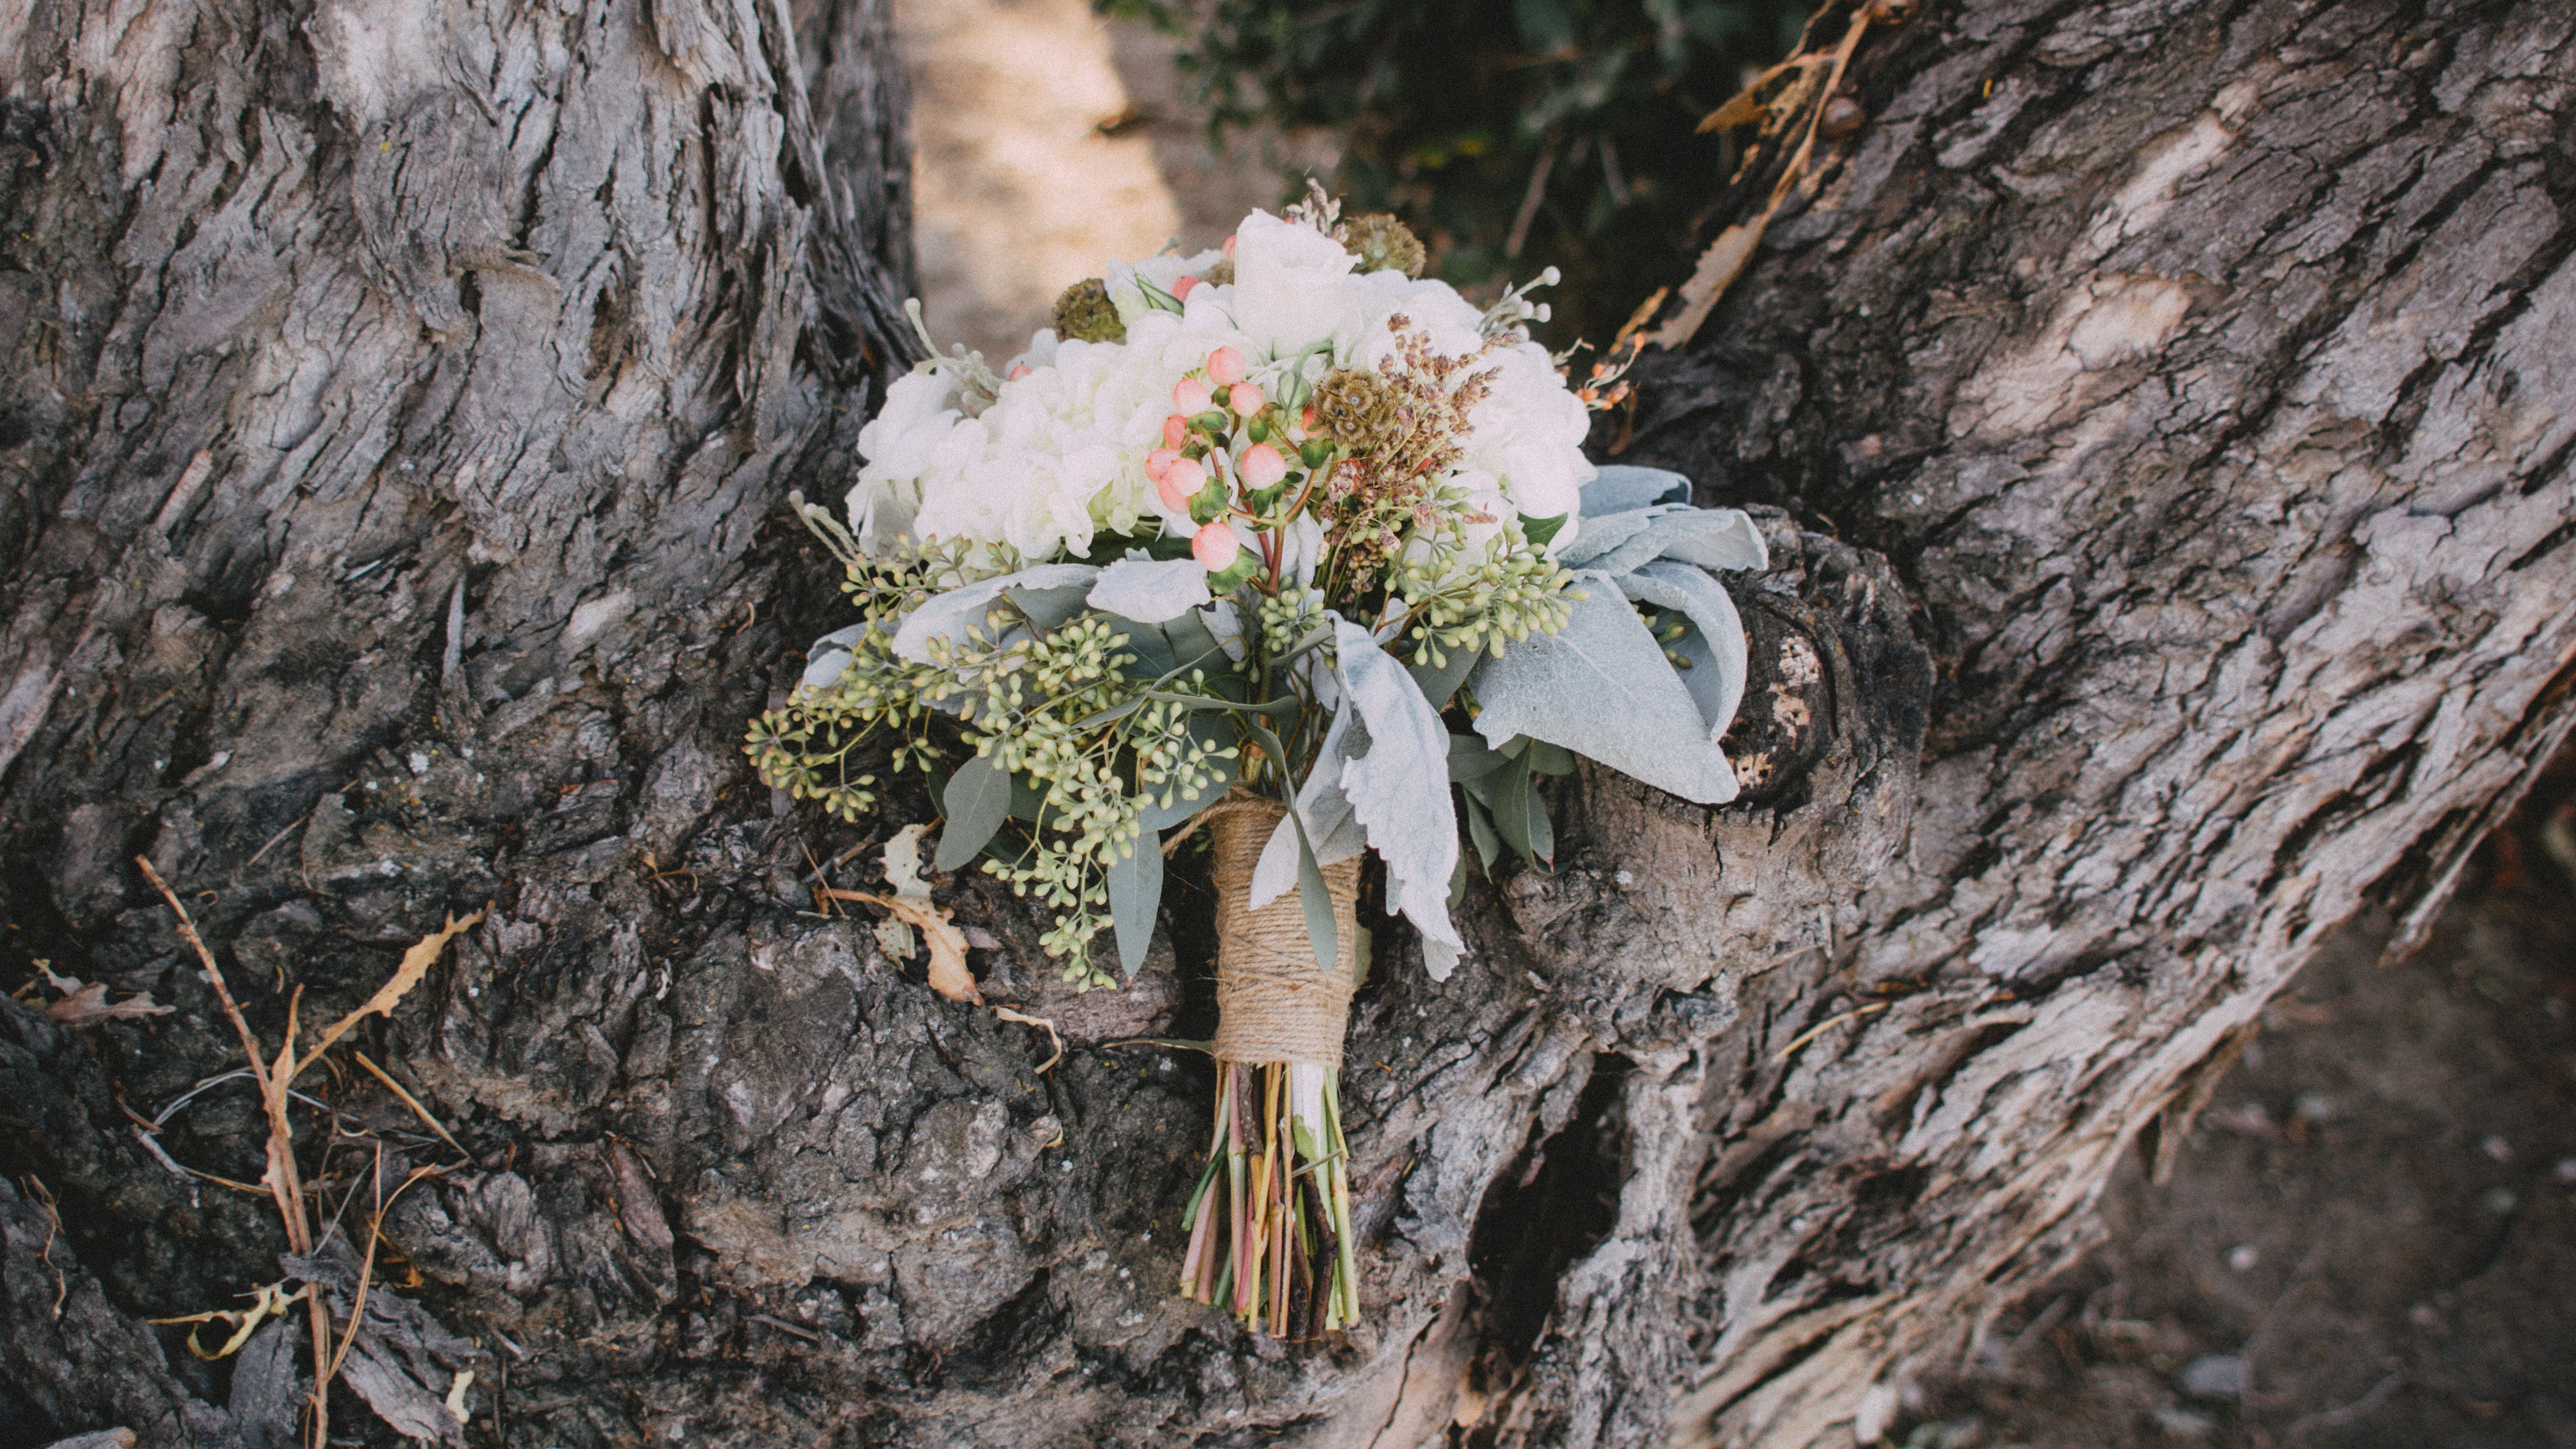 A floral bouquet on a trunk of a large tree